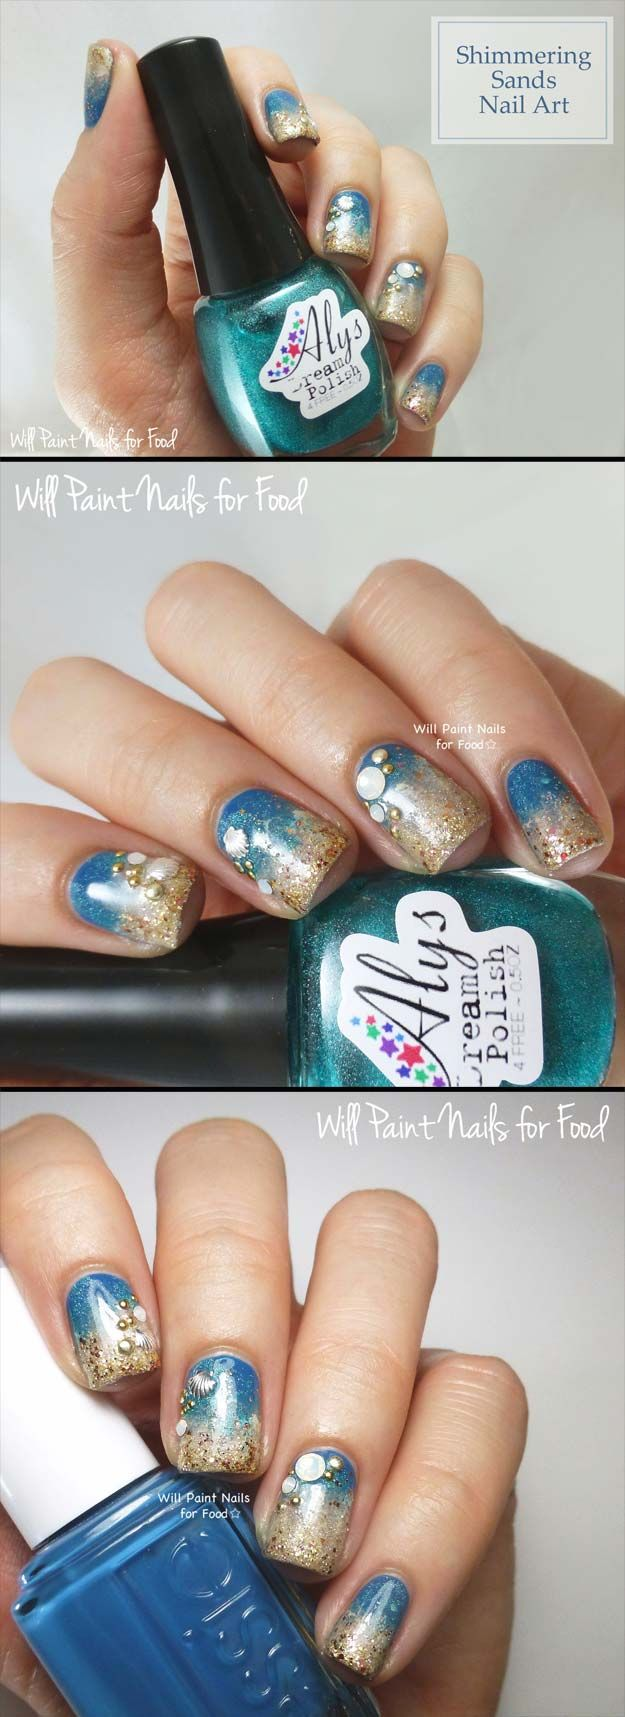 Nail Art Designs For Your Beach Vacation - Shimmering Sands Nail Art - Give Yourself an Awesome New Style With One of These Manicures - Nailart with Palm Trees, Polka Dots, Sea Turtles and Designs For Just the Ring Finger - Blue China Glaze Designs and Toe Nail Art and Simple Glitter Pedicures - https://thegoddess.com/nail-art-designs-for-the-beach